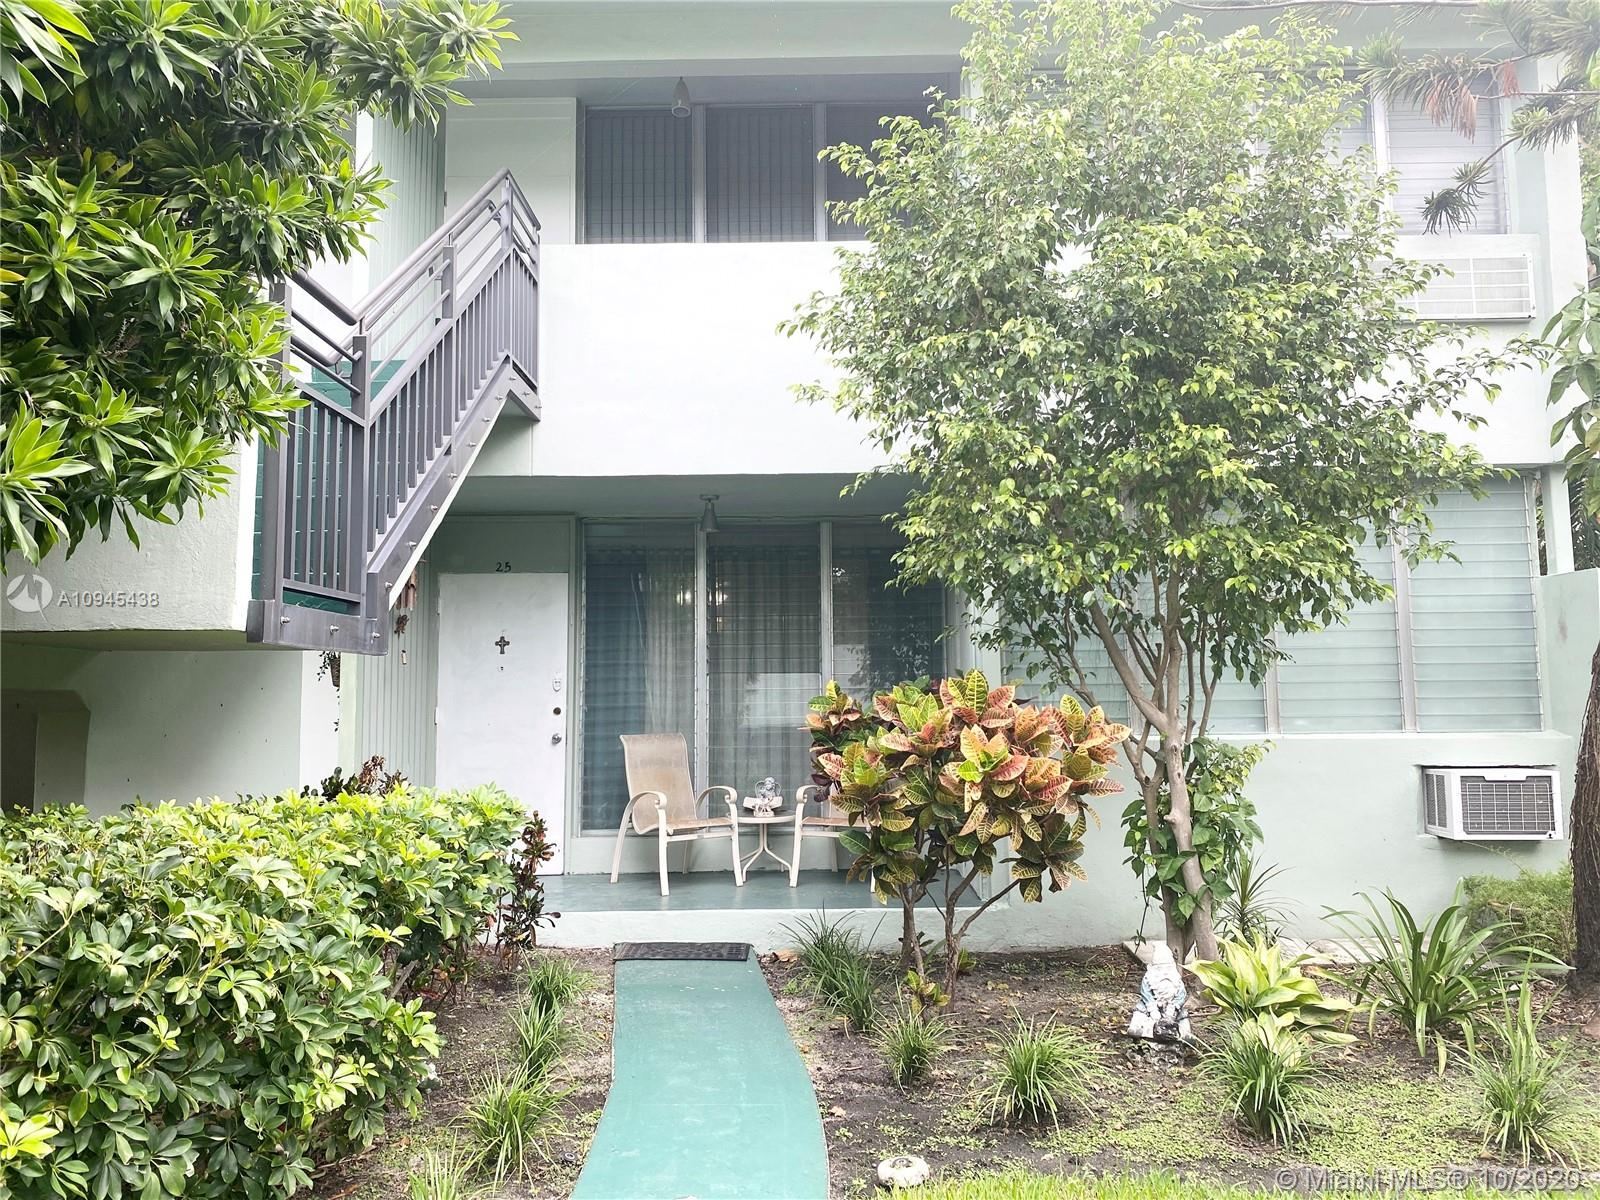 CASH ONLY. 1 Bed/ 1 Bath newly renovated corner unit in a garden style private complex in Bay Harbor Island. Close proximity to Bal Harbor shops and the beaches. Tile floors, new kitchen cabinets,